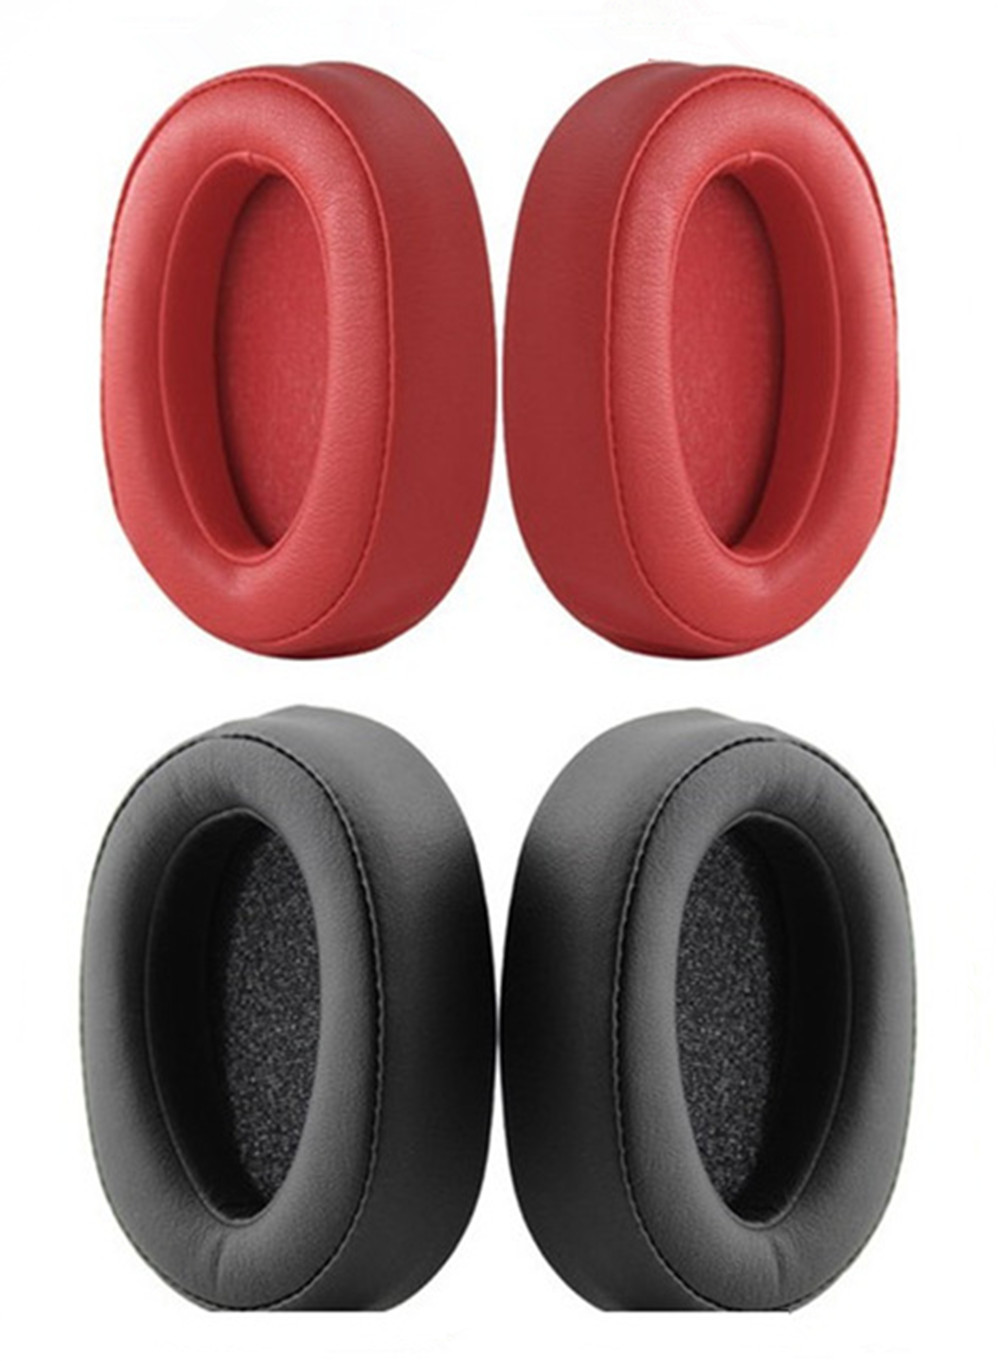 1-Pair-of-Pillow-Replacement-Ear-Pads-Cushion-Earpads-for-Sony-MDR-100ABN-WH-H900N-Headphones.jpg_640x640